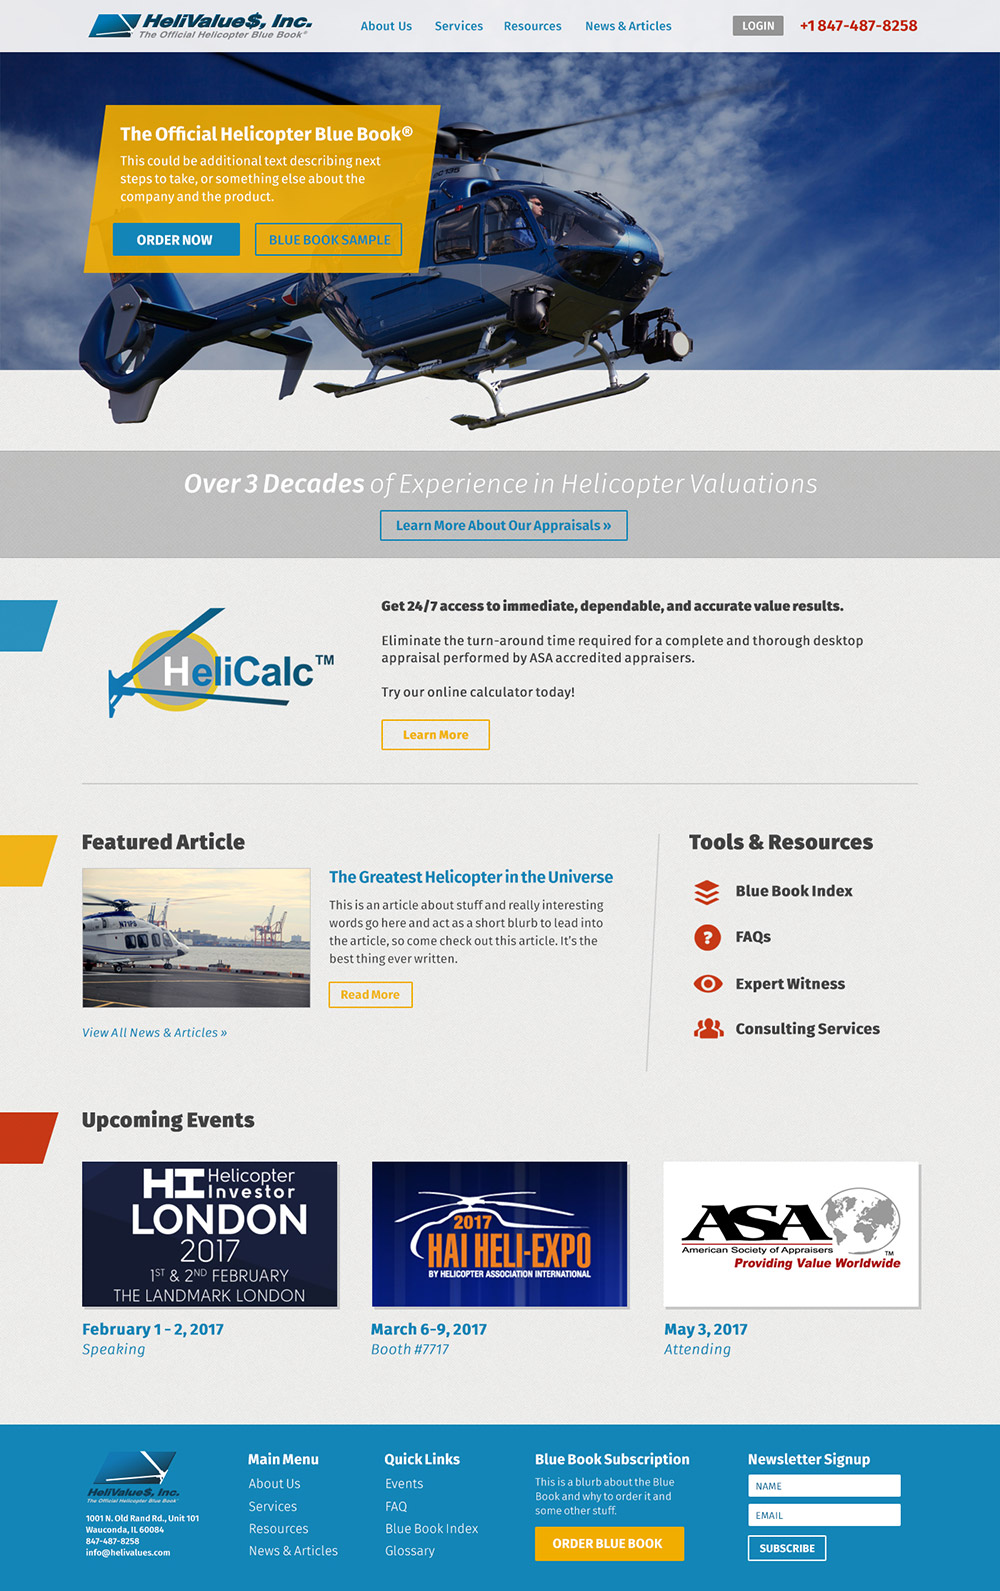 Helivalue$ Homepage